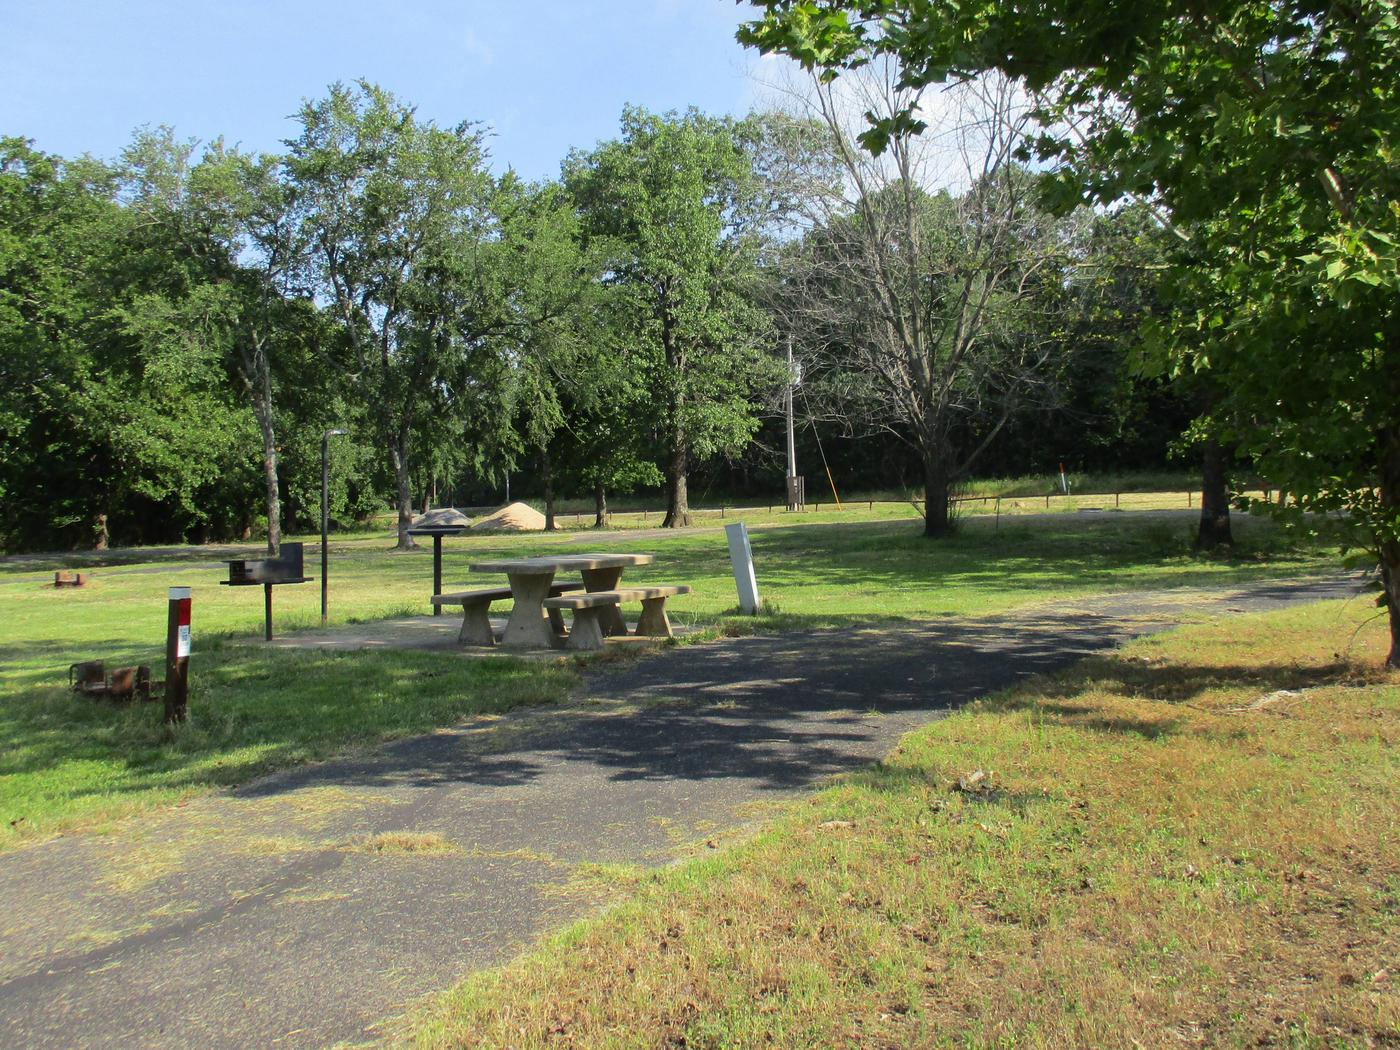 Site 7 has a shaded picnic area in the afternoon.Site 7 has a large grassy area for extra tents or room for the kids to play.